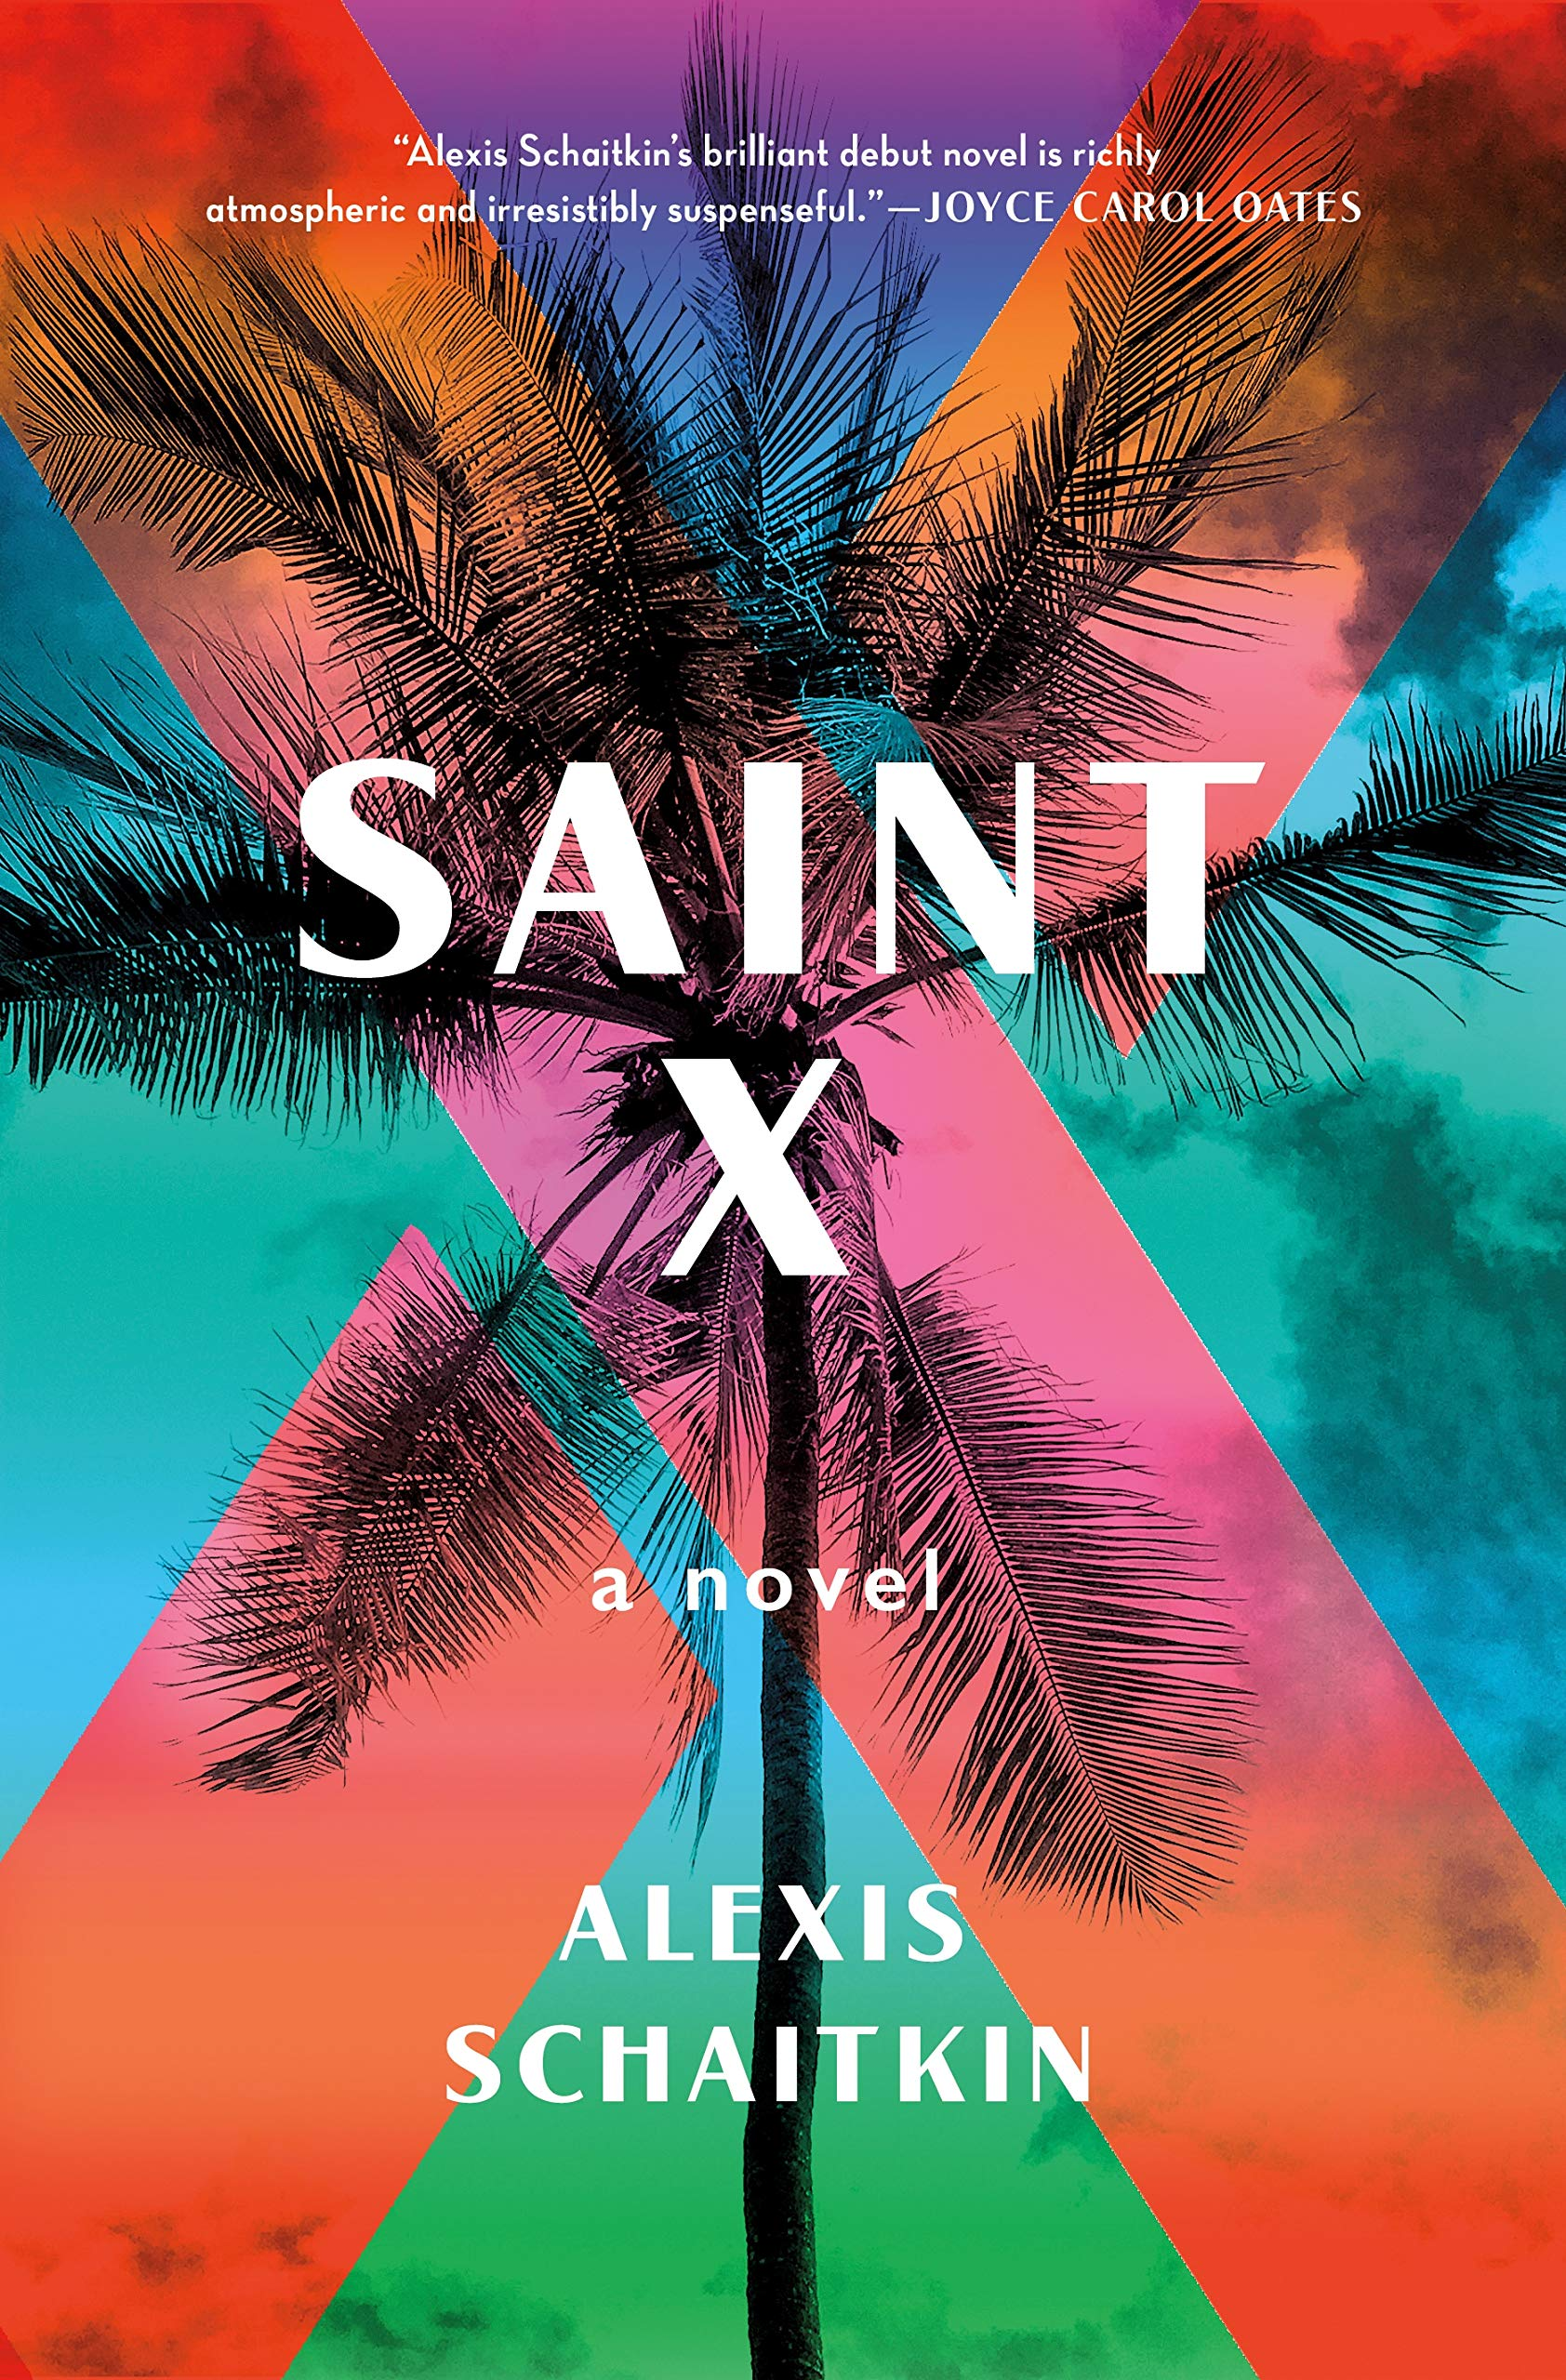 Amazon.com: Saint X: A Novel (9781250219596): Schaitkin, Alexis: Books